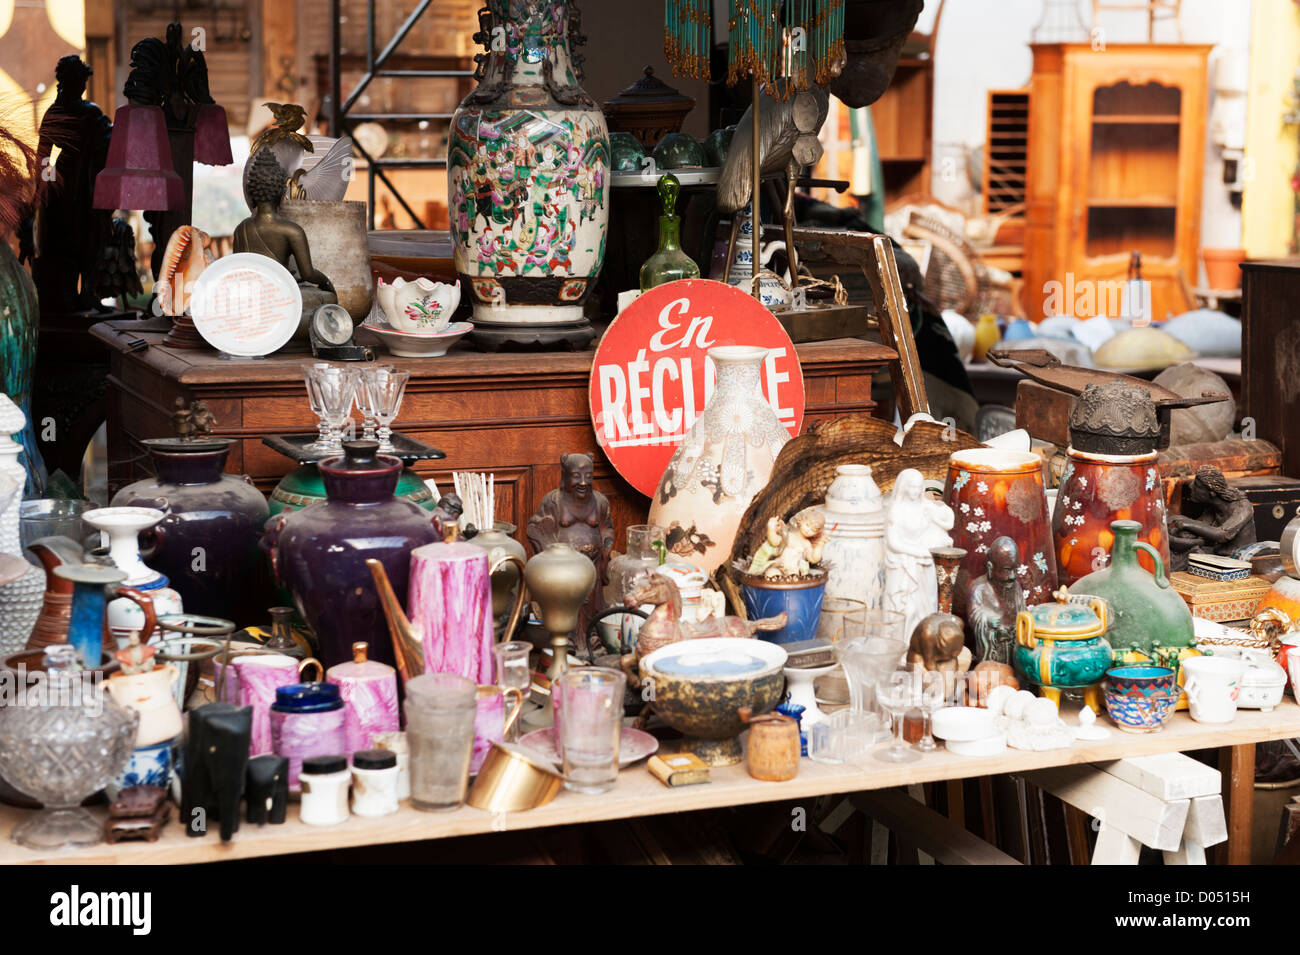 March aux puces flea market at st ouen near to - Marche aux puces porte de clignancourt ...